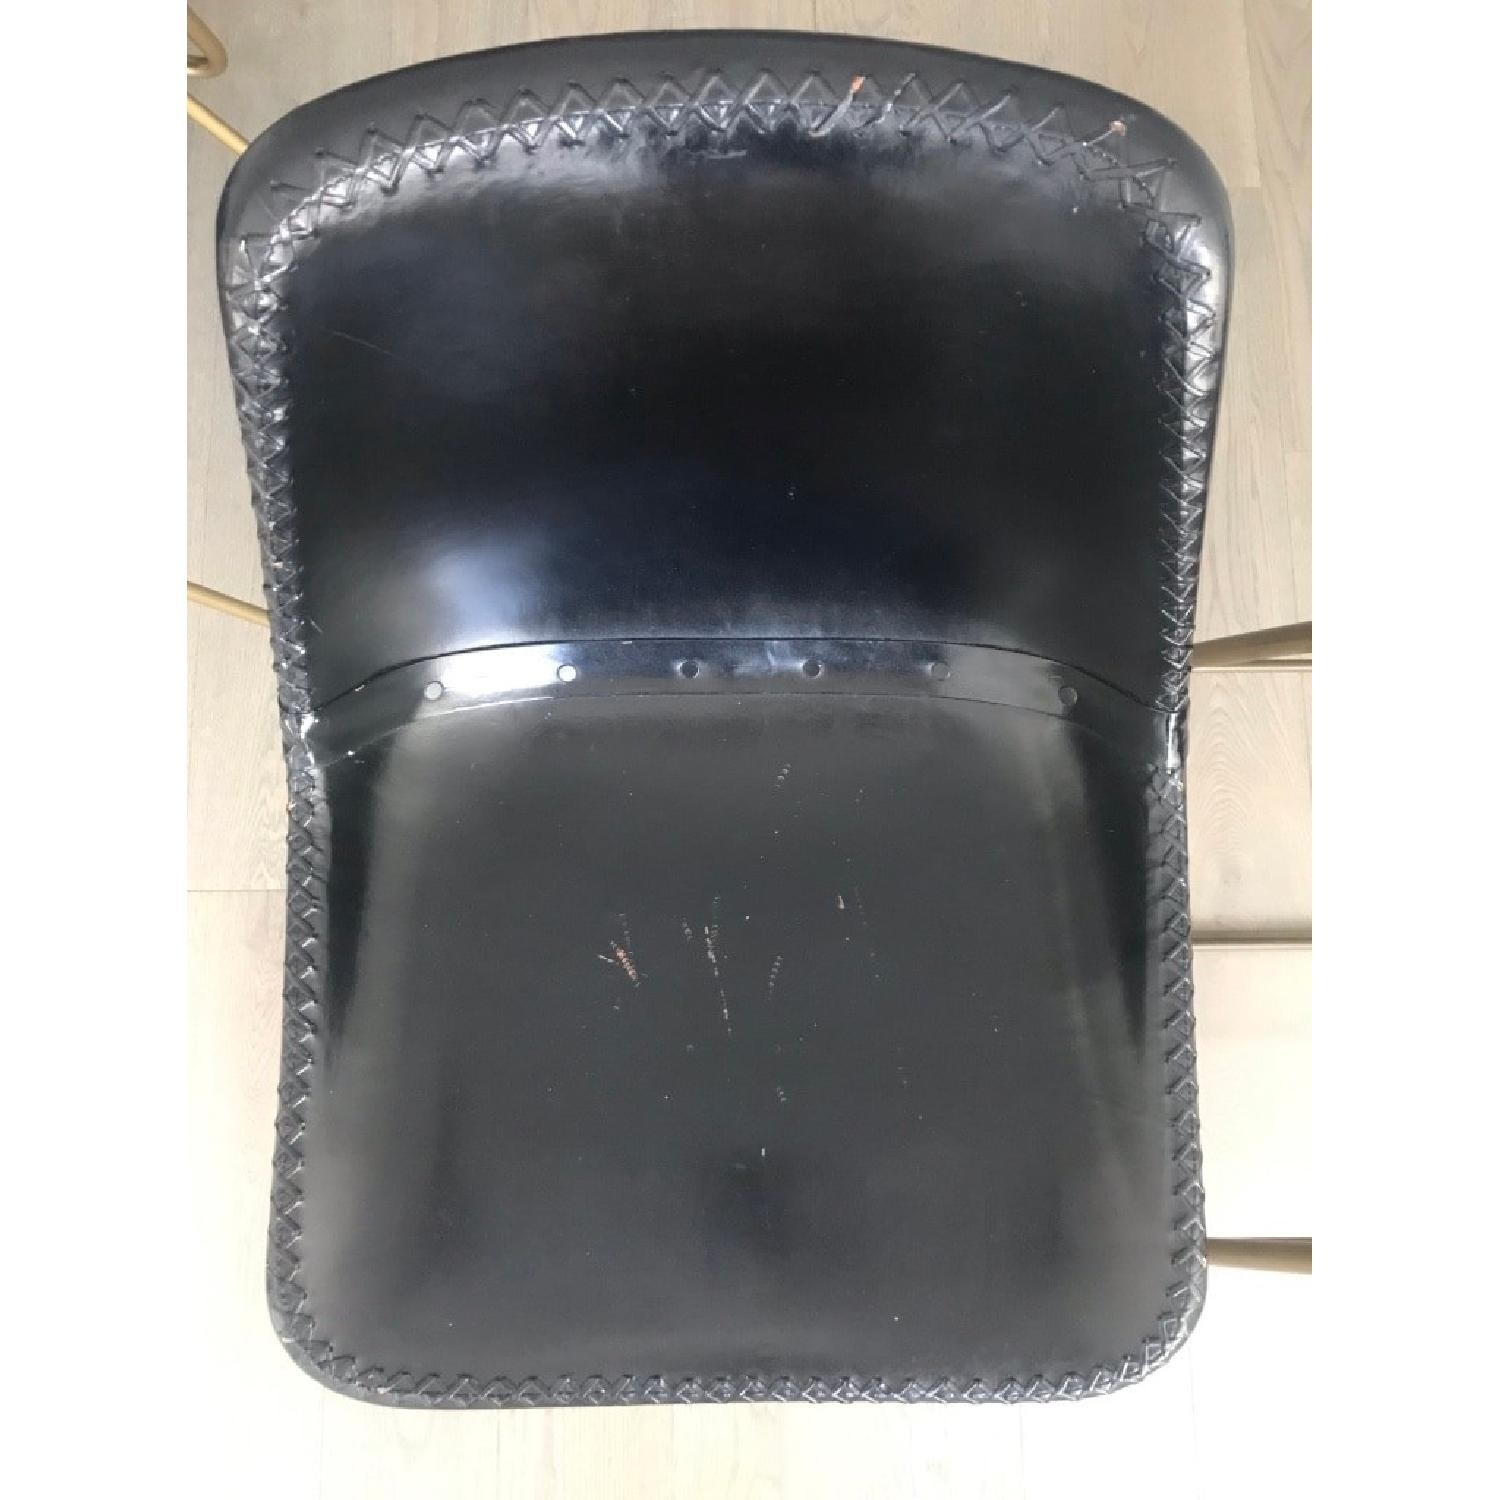 CB2 Roadhouse Black Leather Counter Stools - image-4